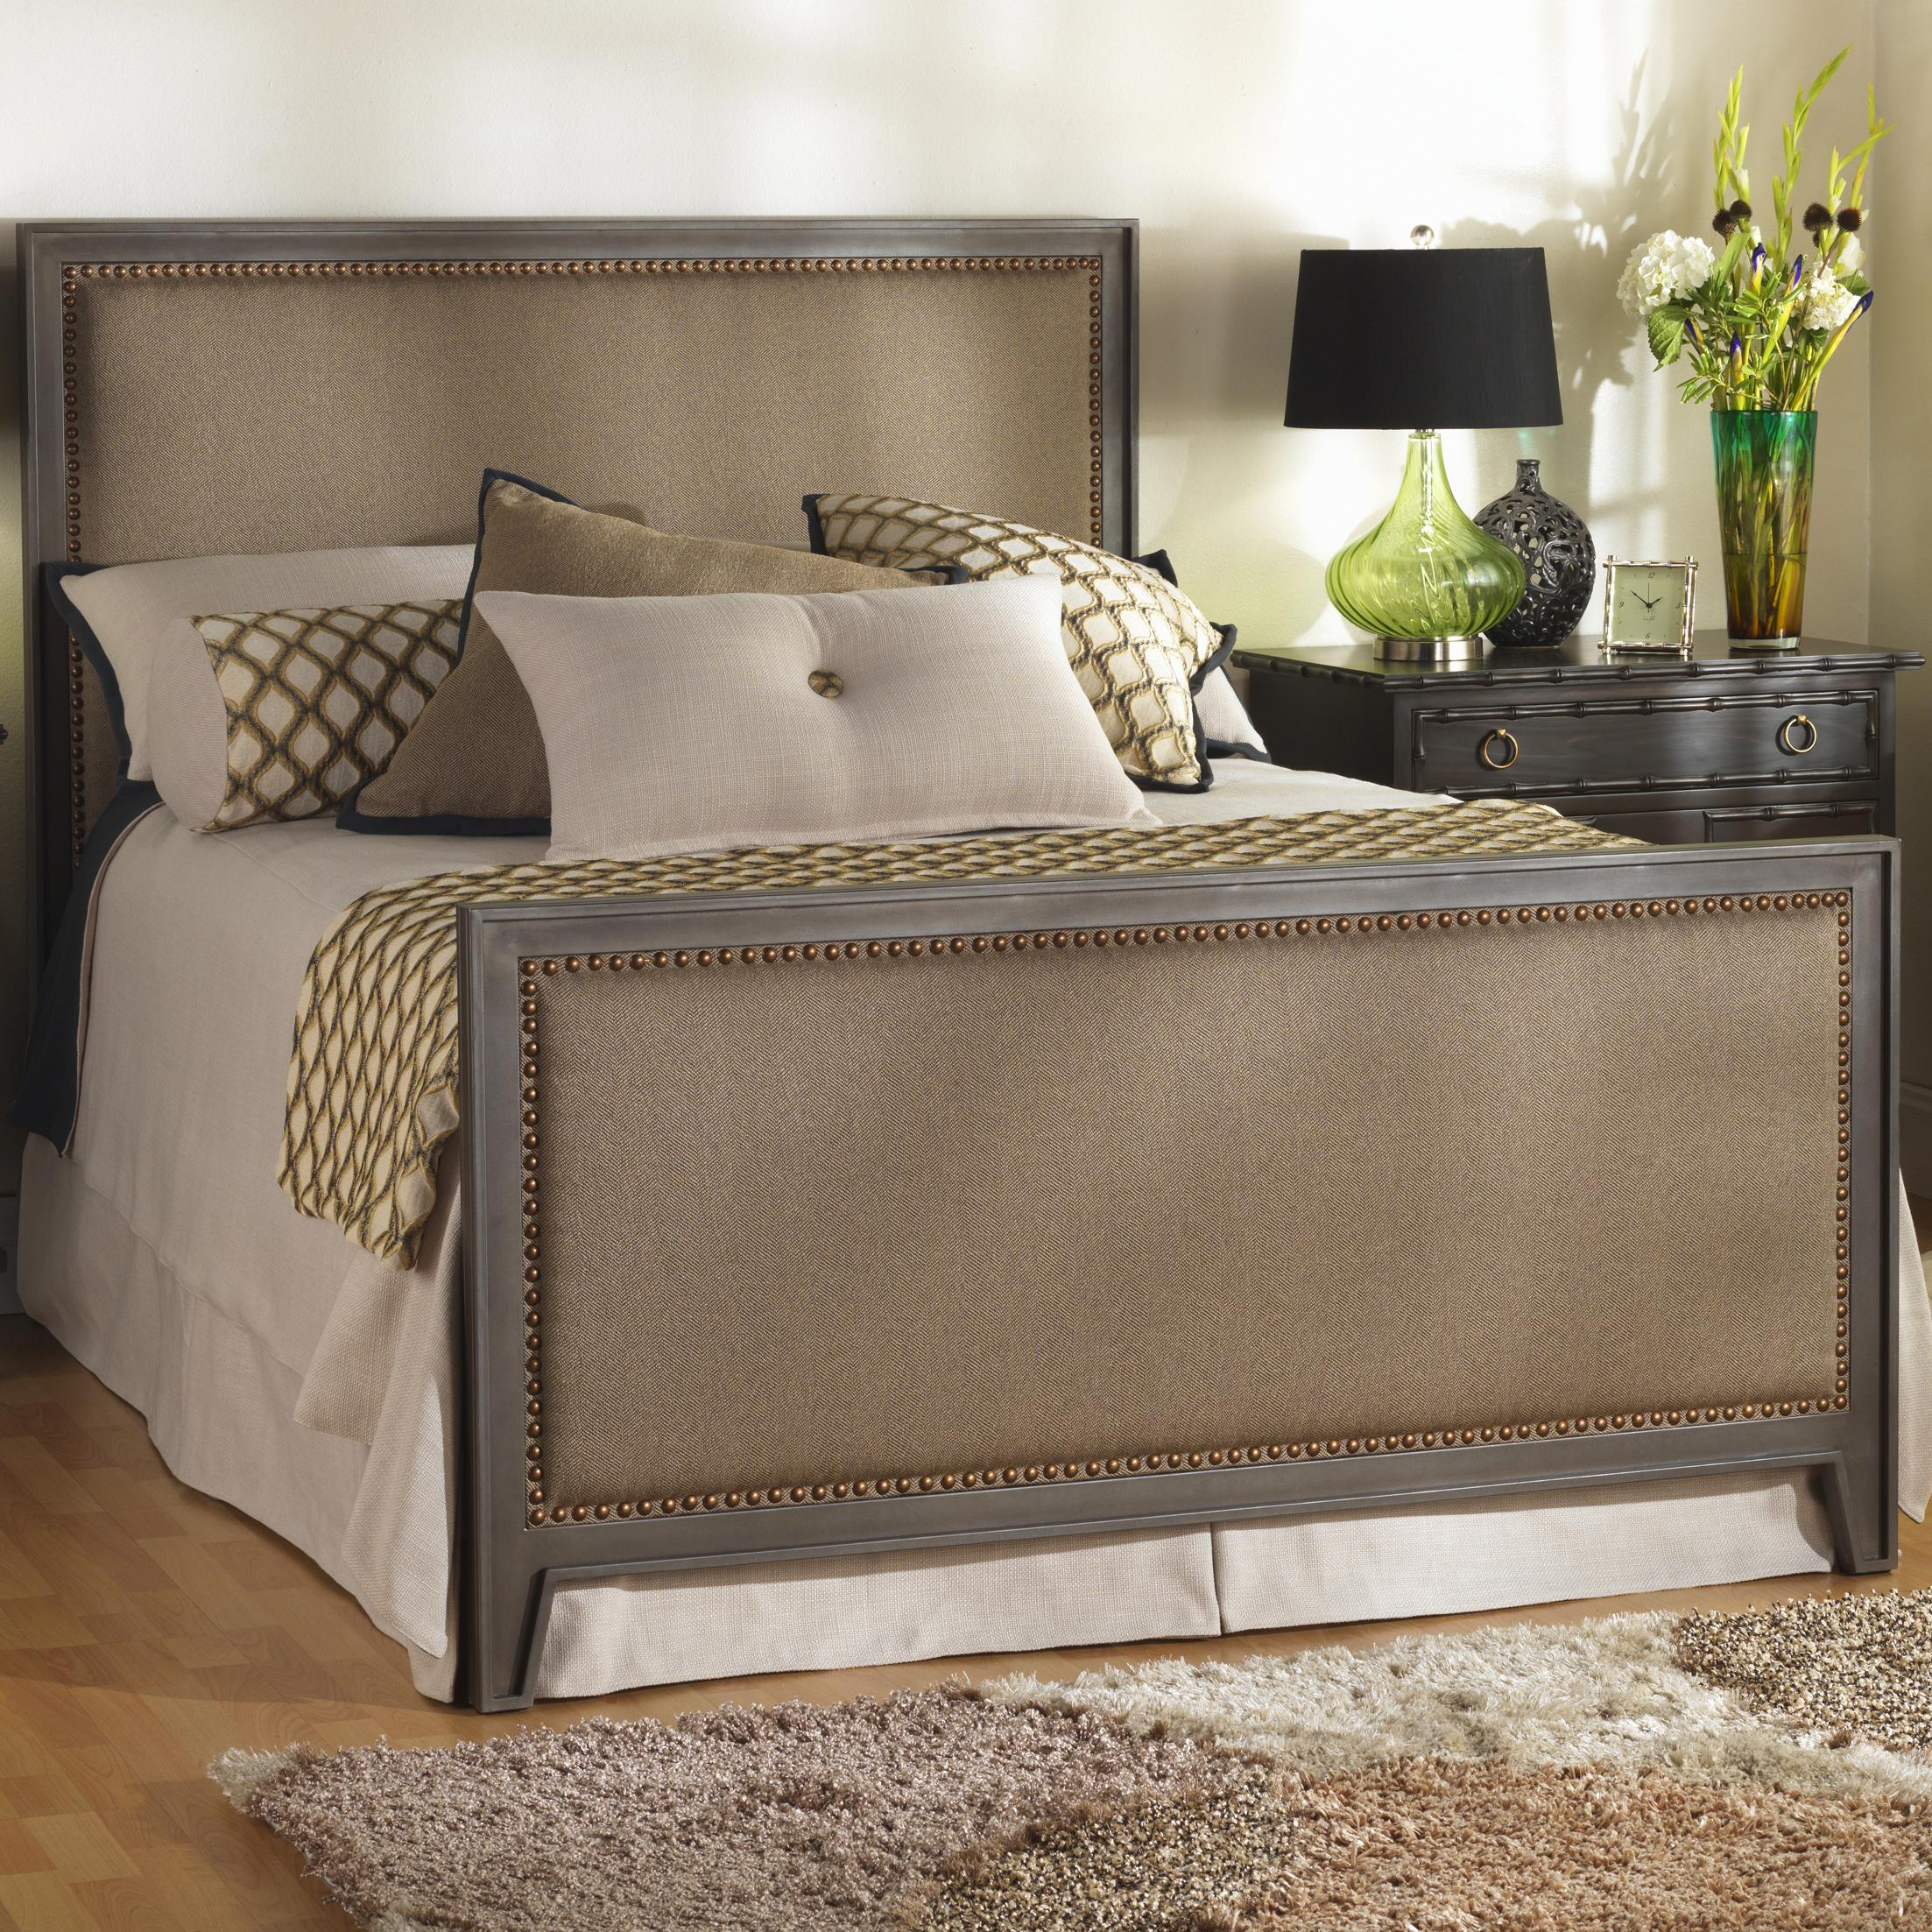 Wesley Allen Iron Beds Queen Avery Iron Bed With